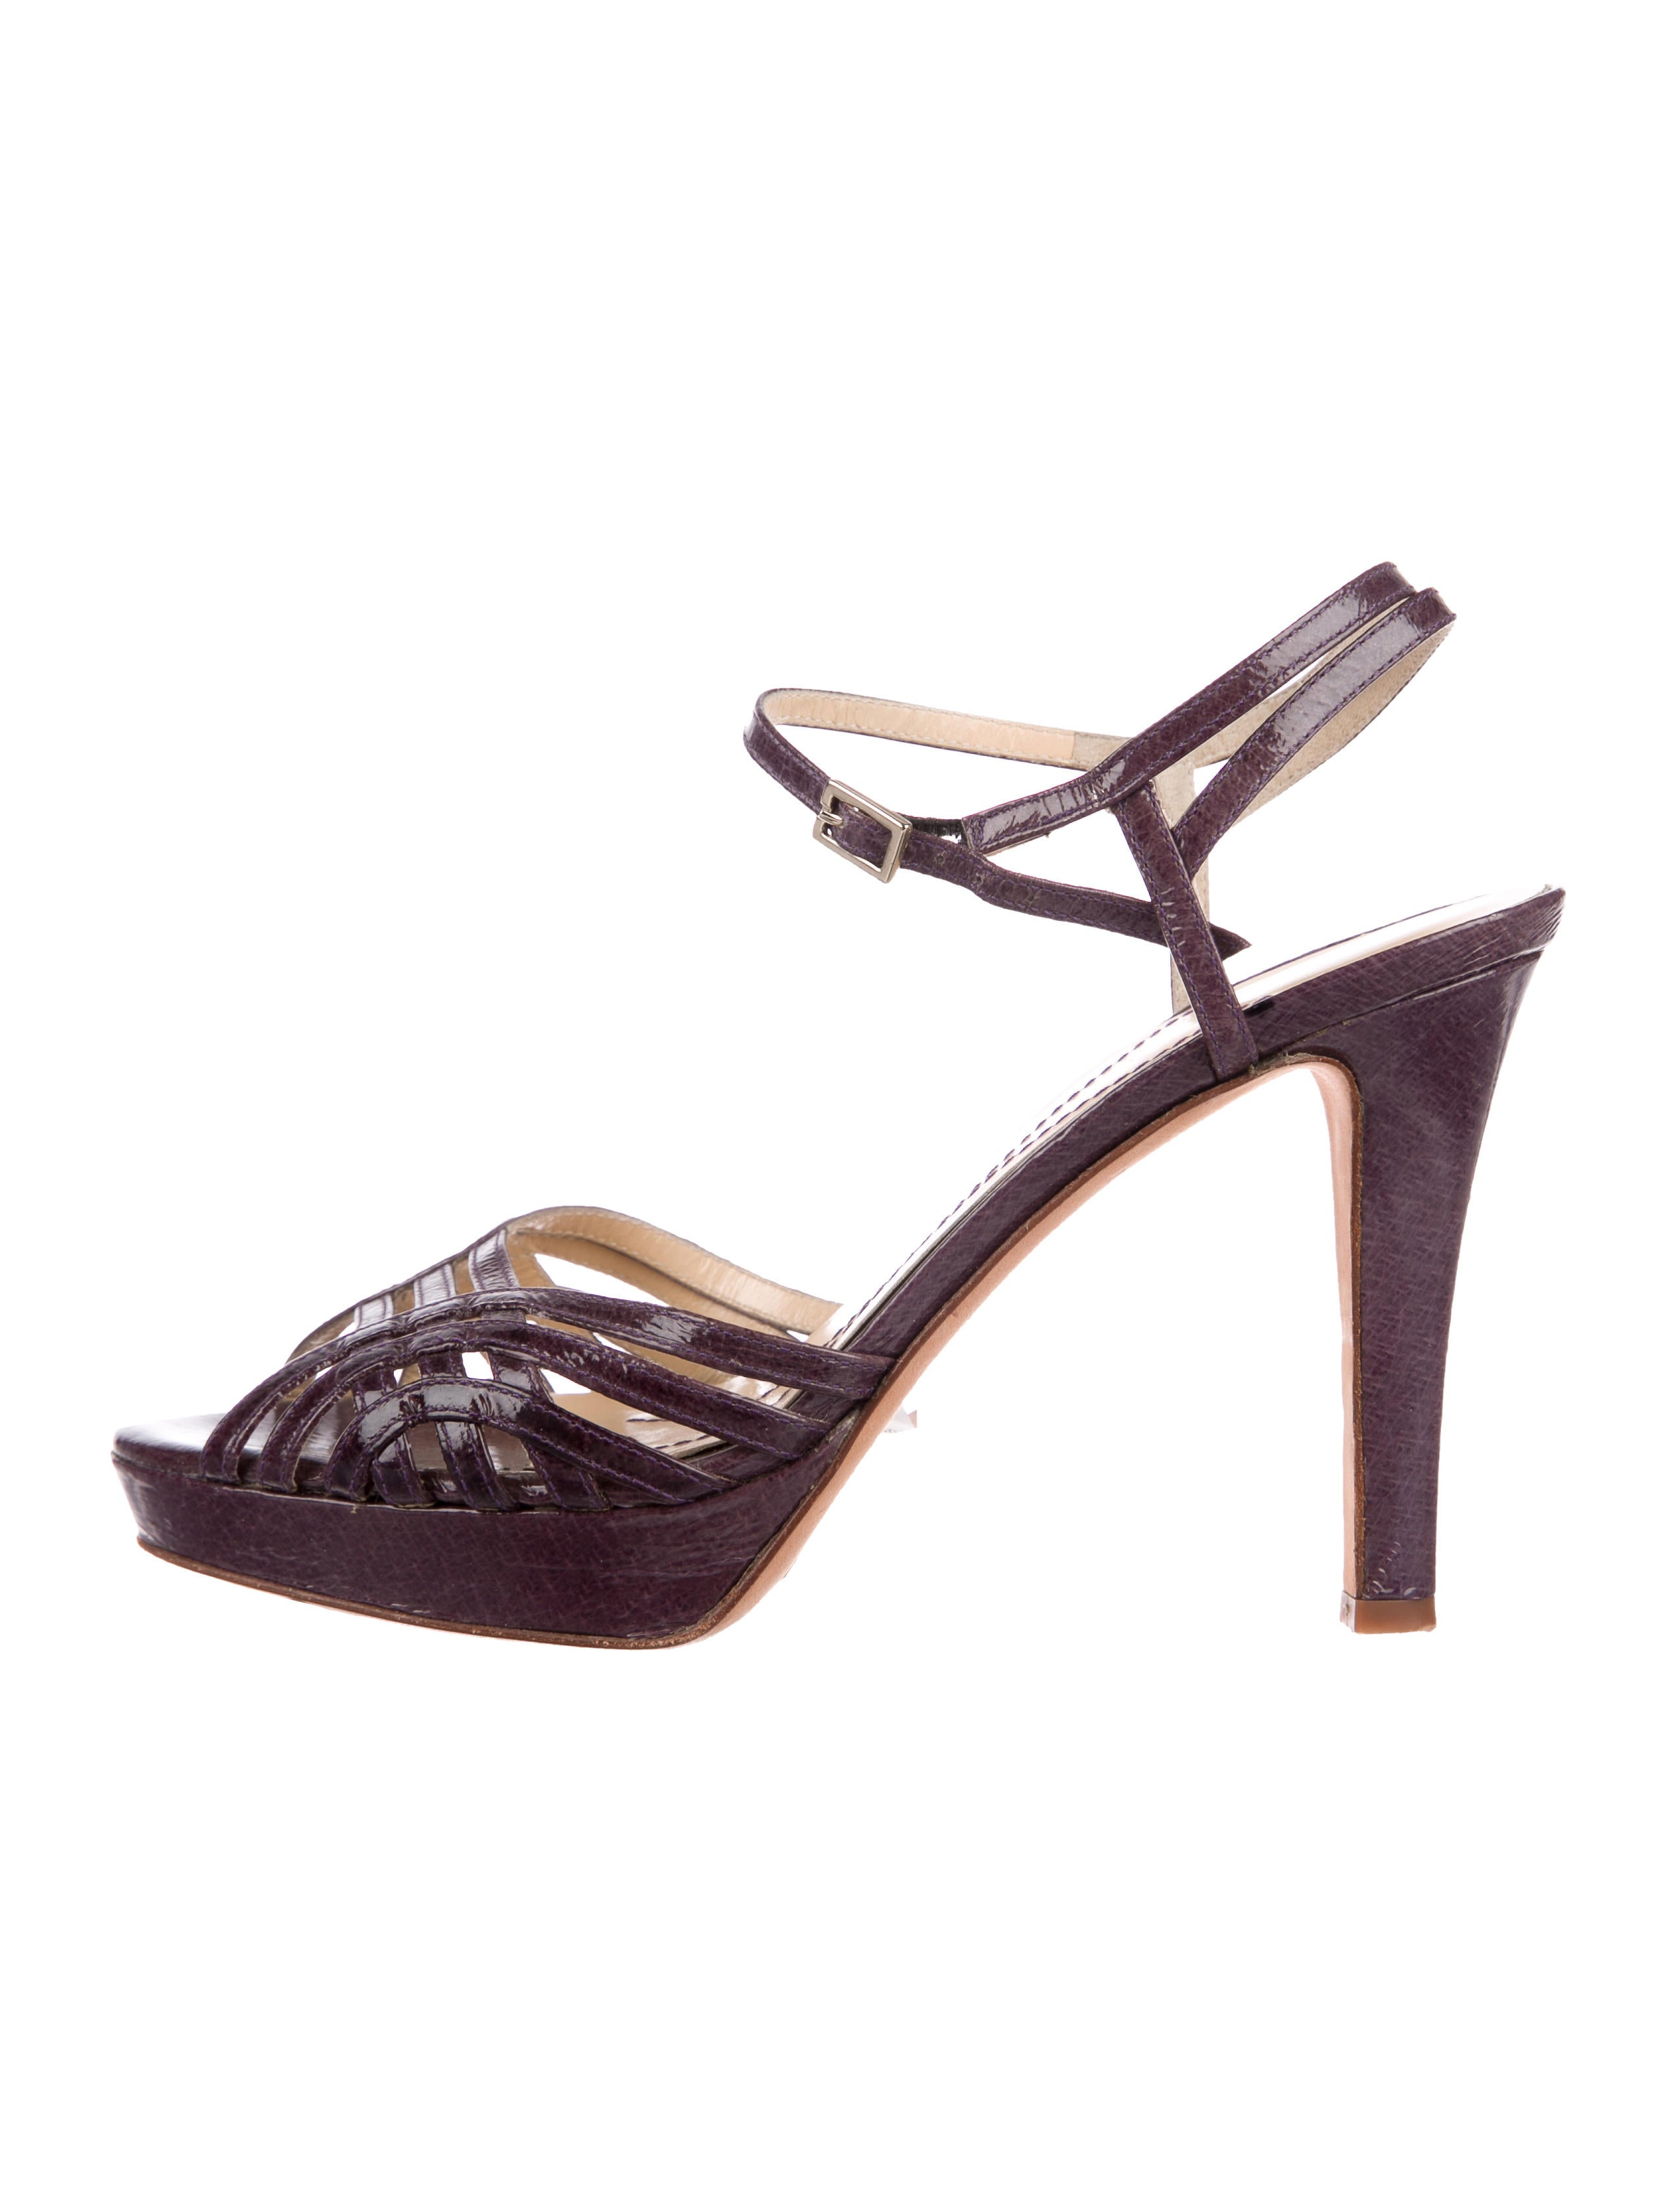 Kate Spade New York Leather Multistrap Sandals